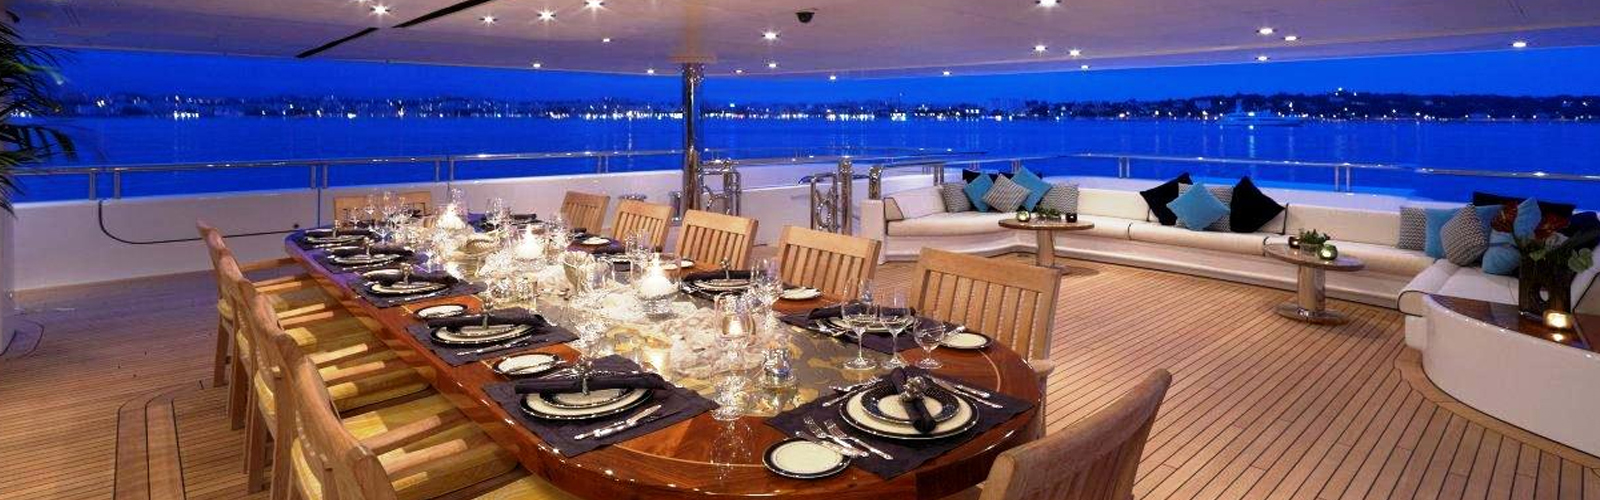 on-board-a-superyacht